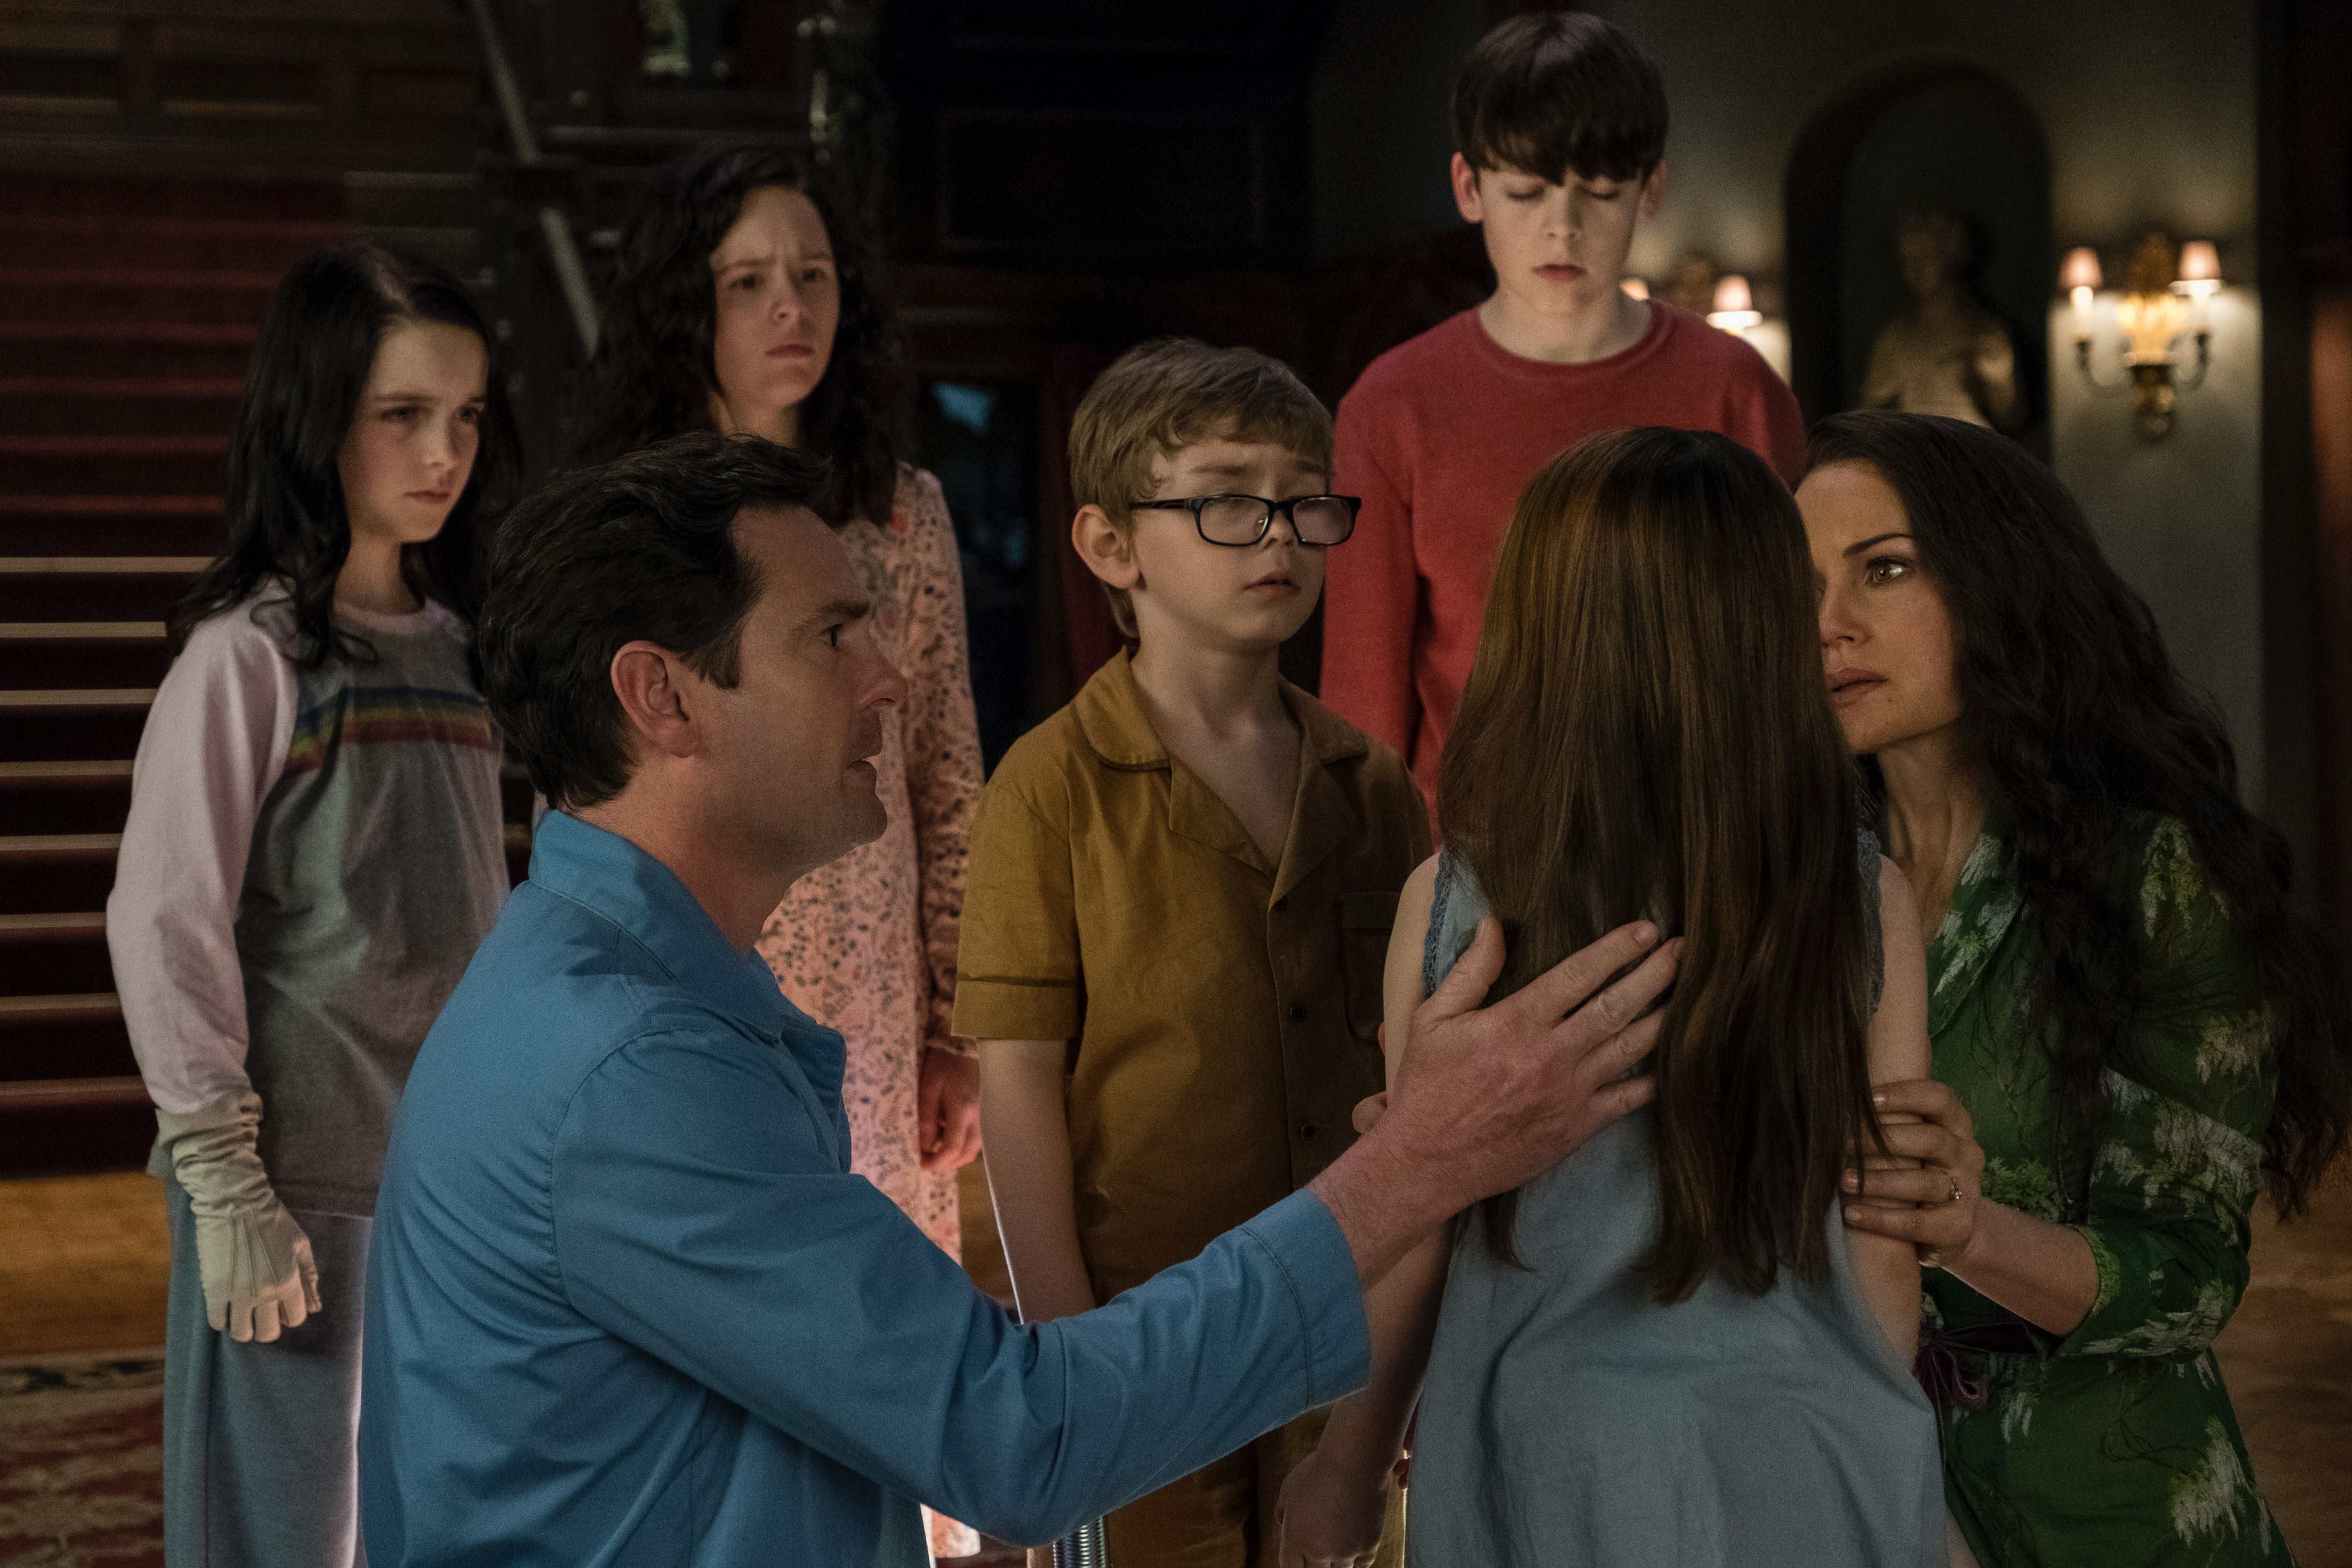 The Haunting Of Hill House Season 2 Cast Will Have A Ton Of Familiar Faces